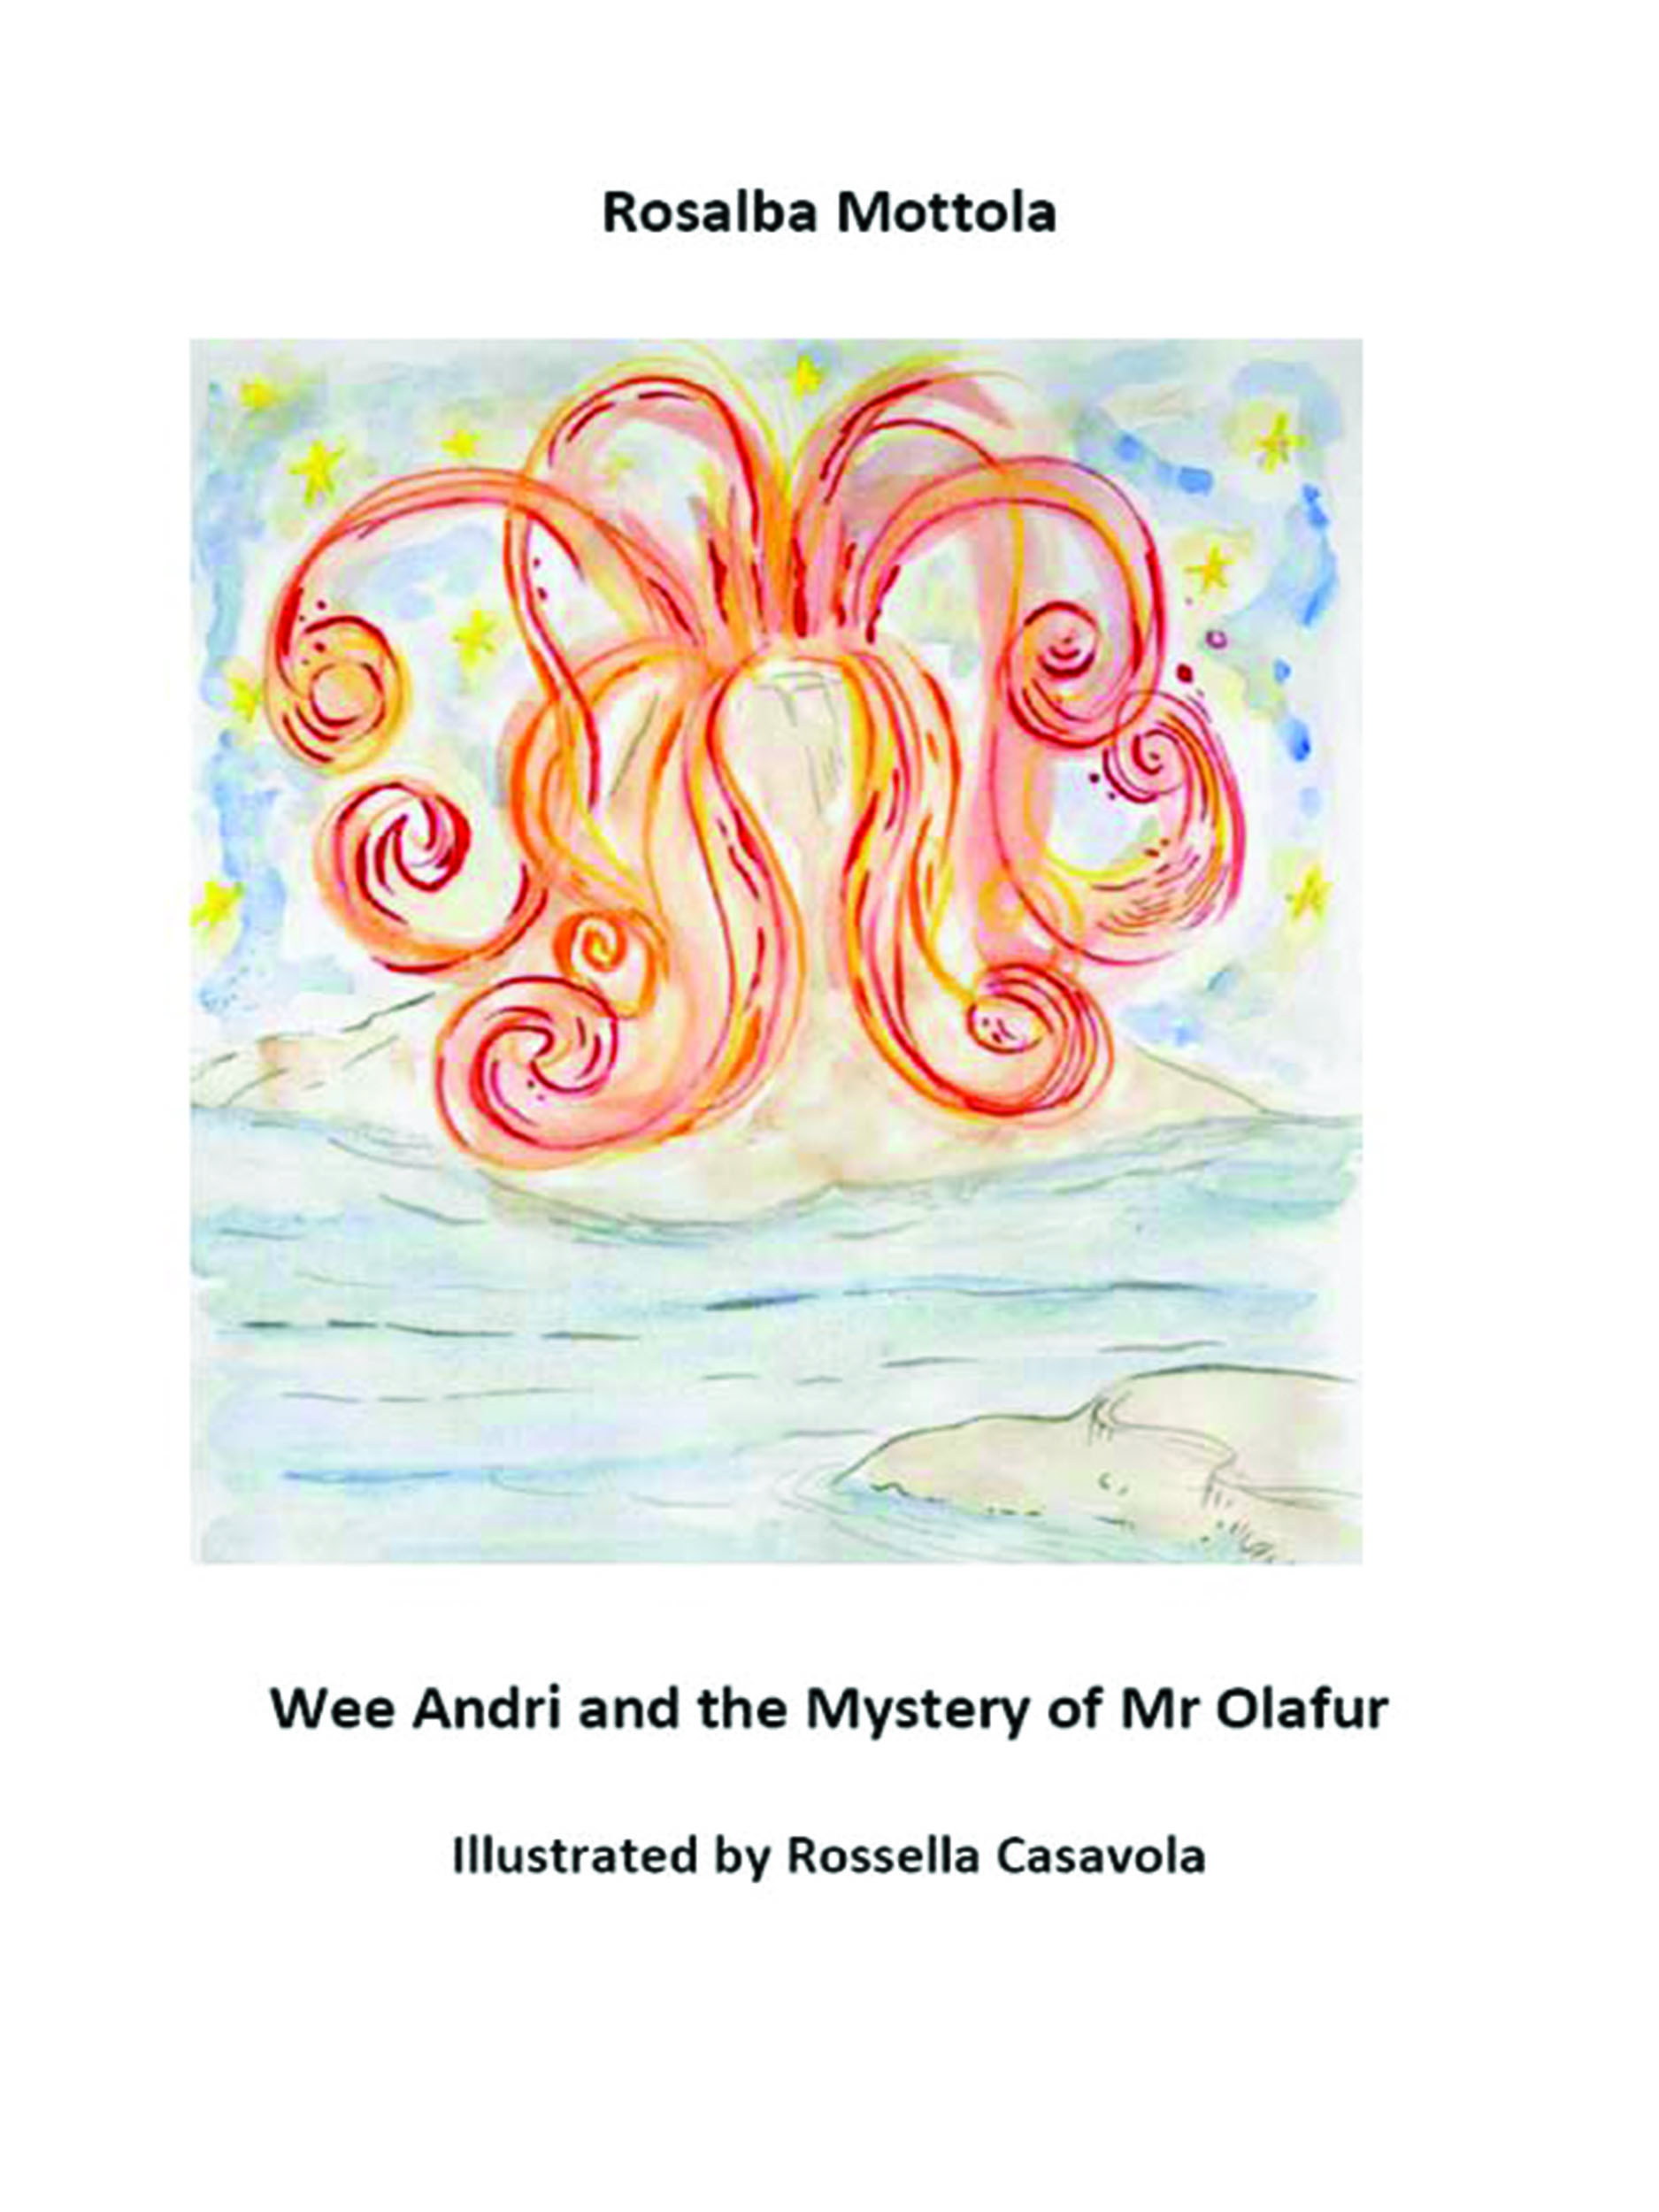 Wee Andri and the Mystery of Mr Olafur